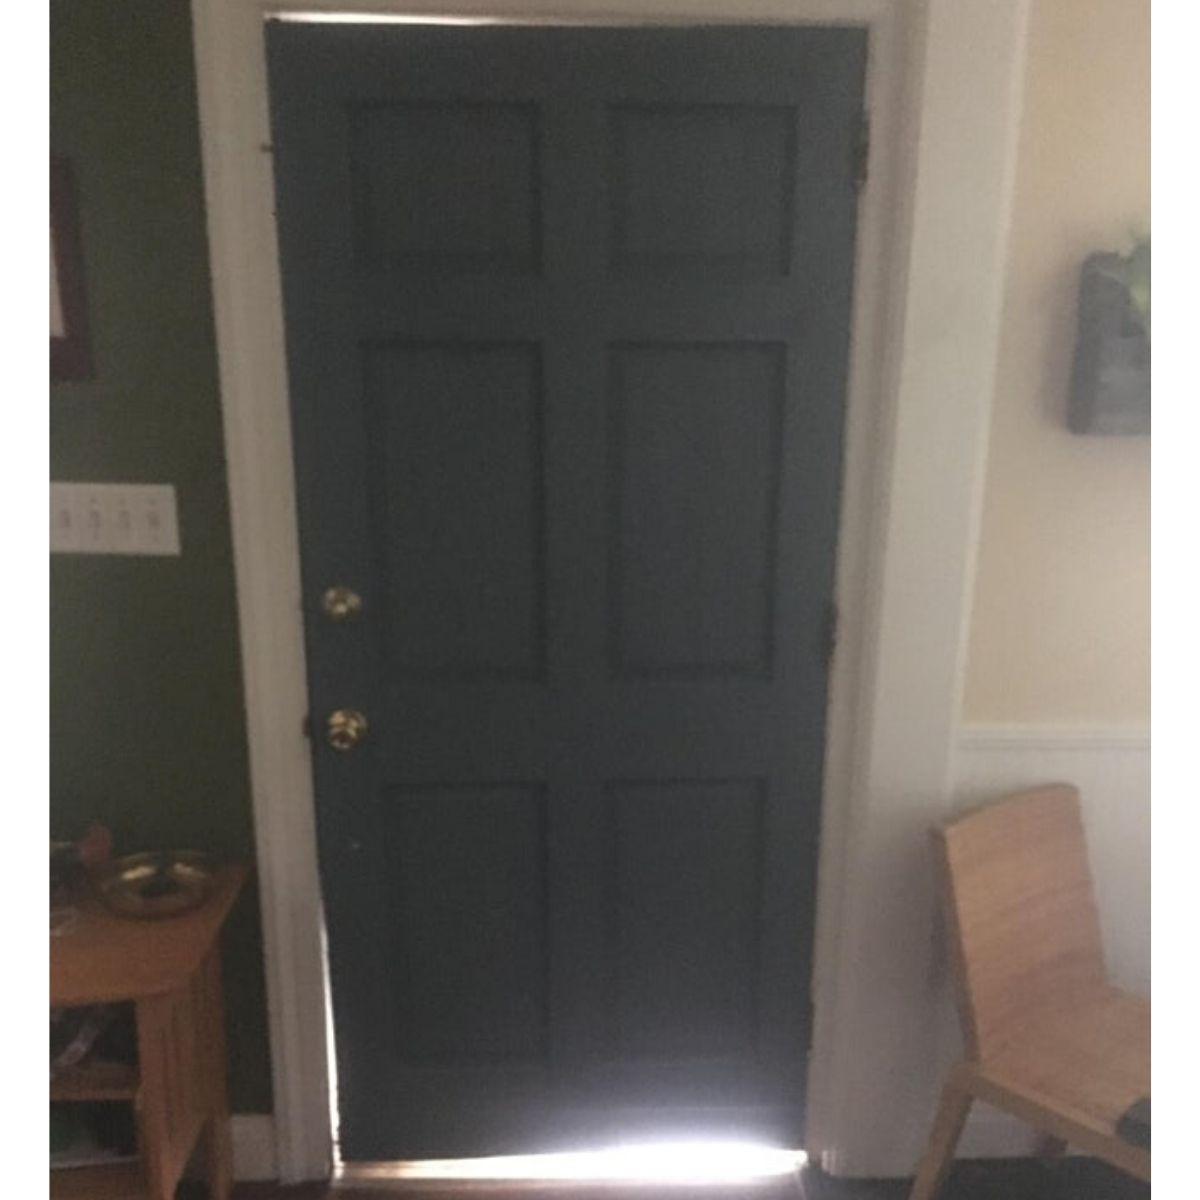 natural light and an ill fitting door